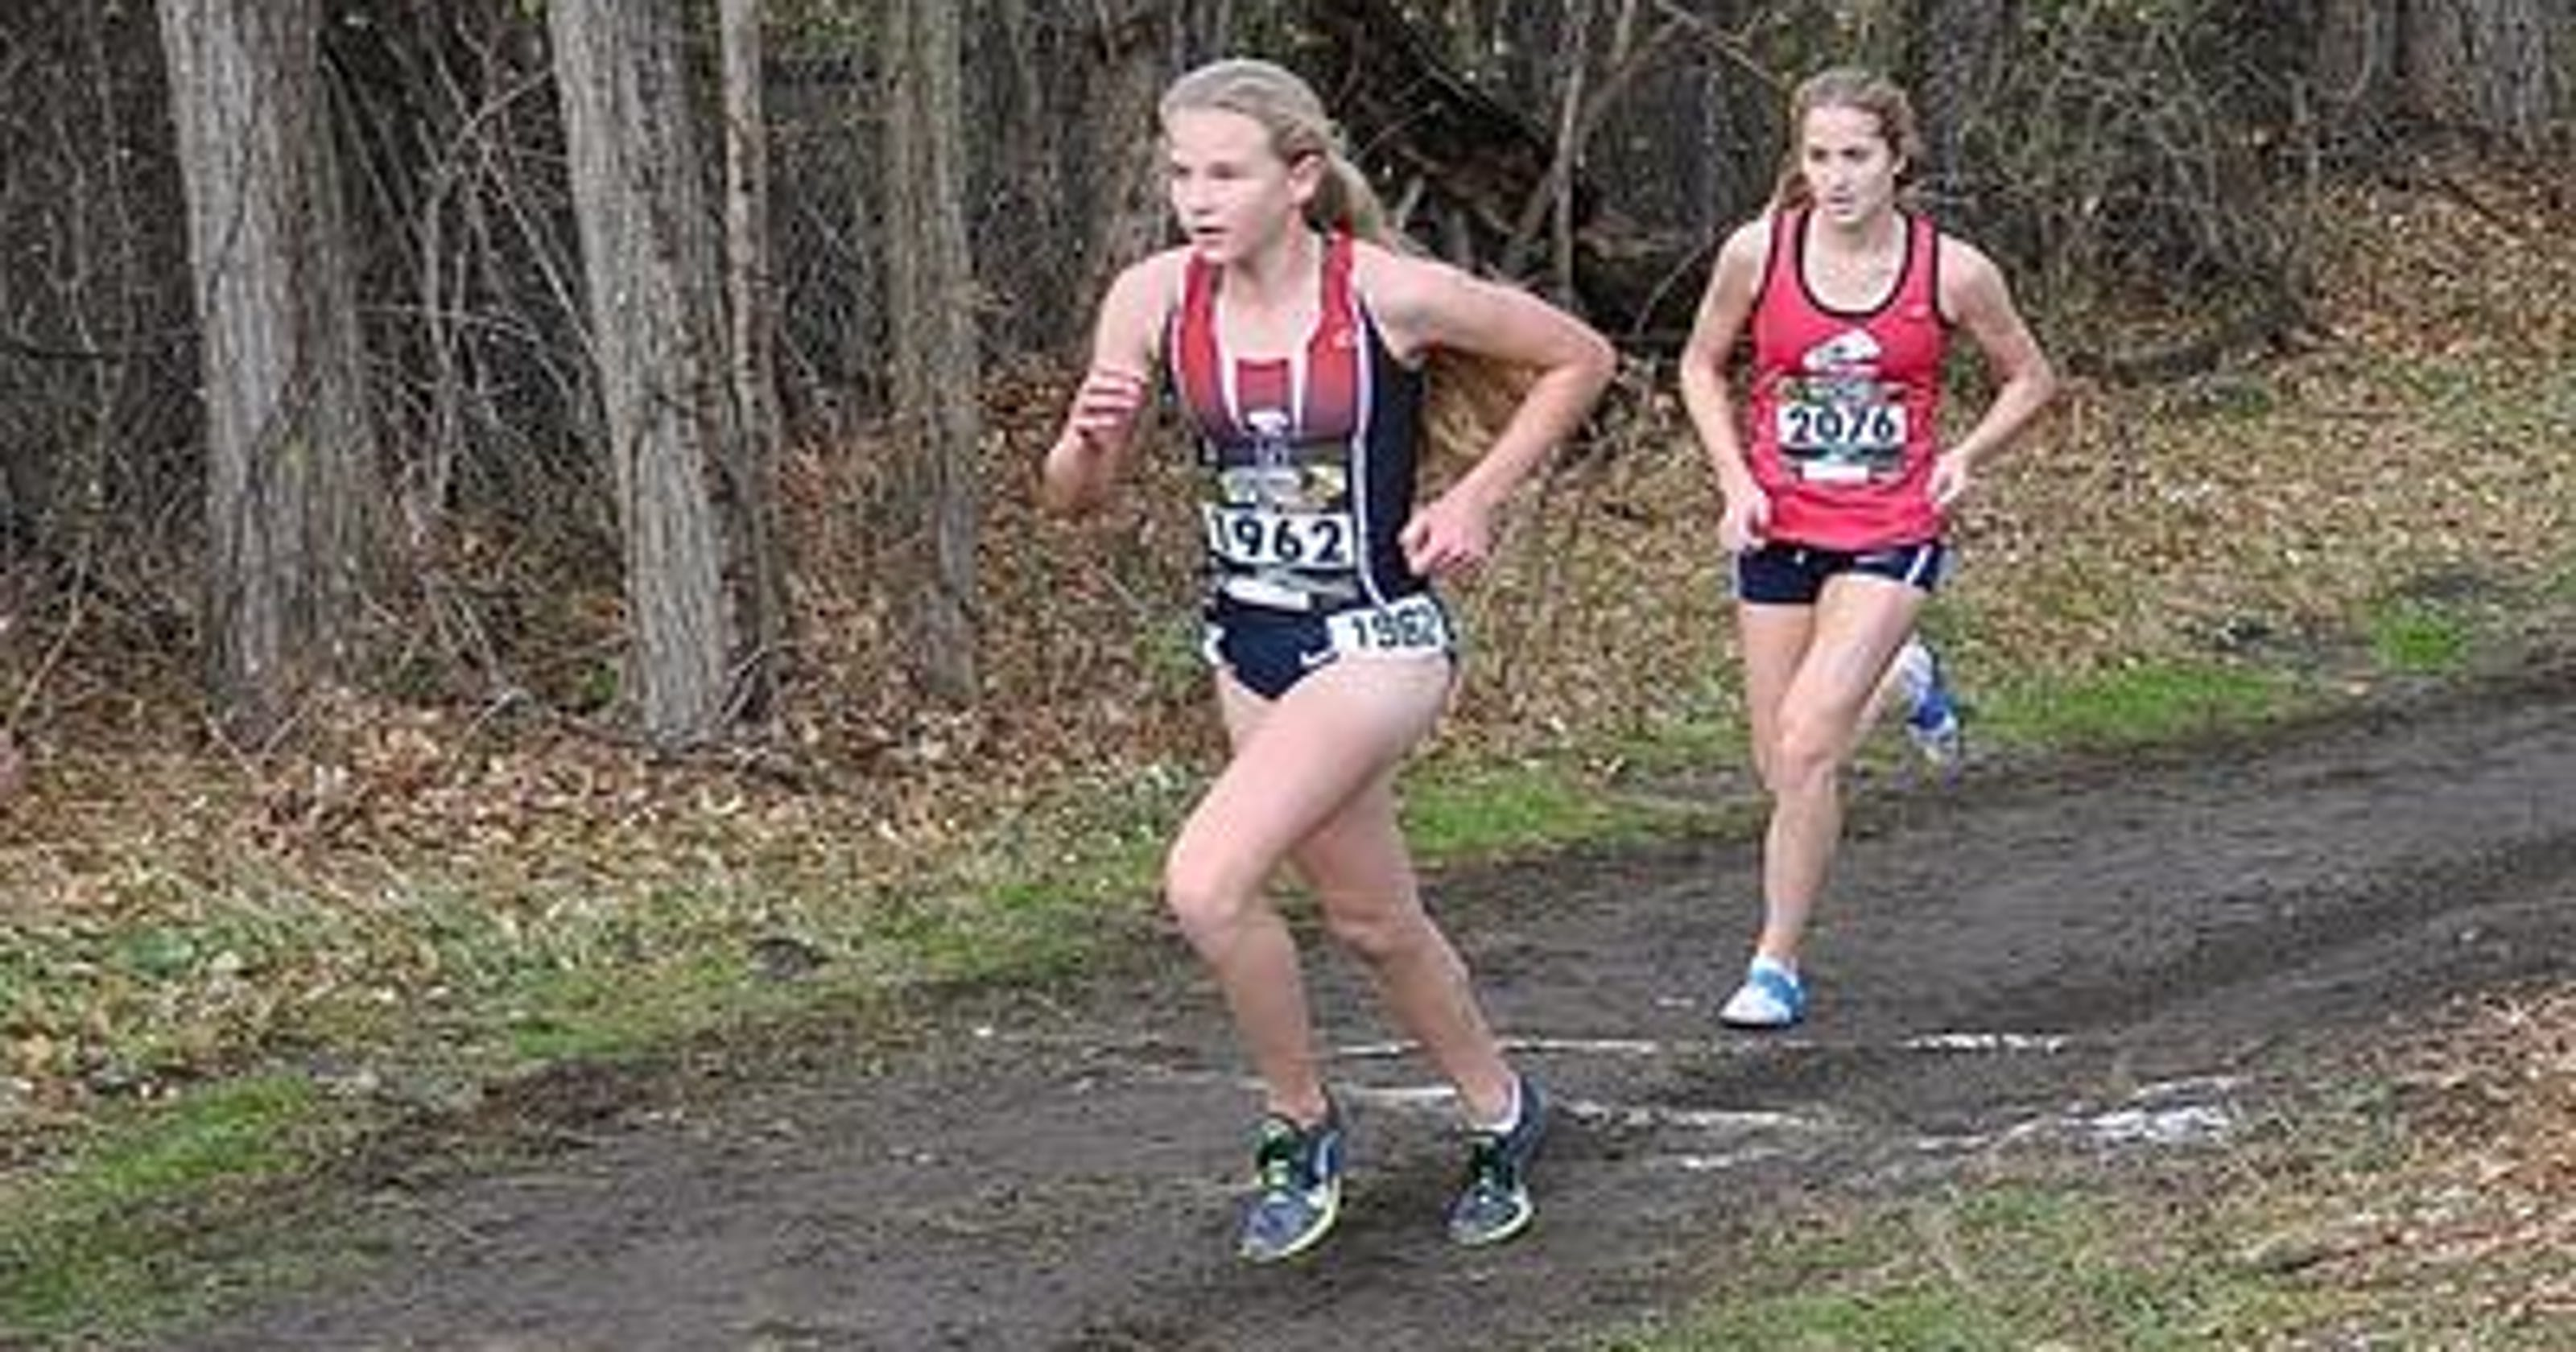 Tuohy destroys Manhattan course record; other local athletes, teams excel at huge X-C meet